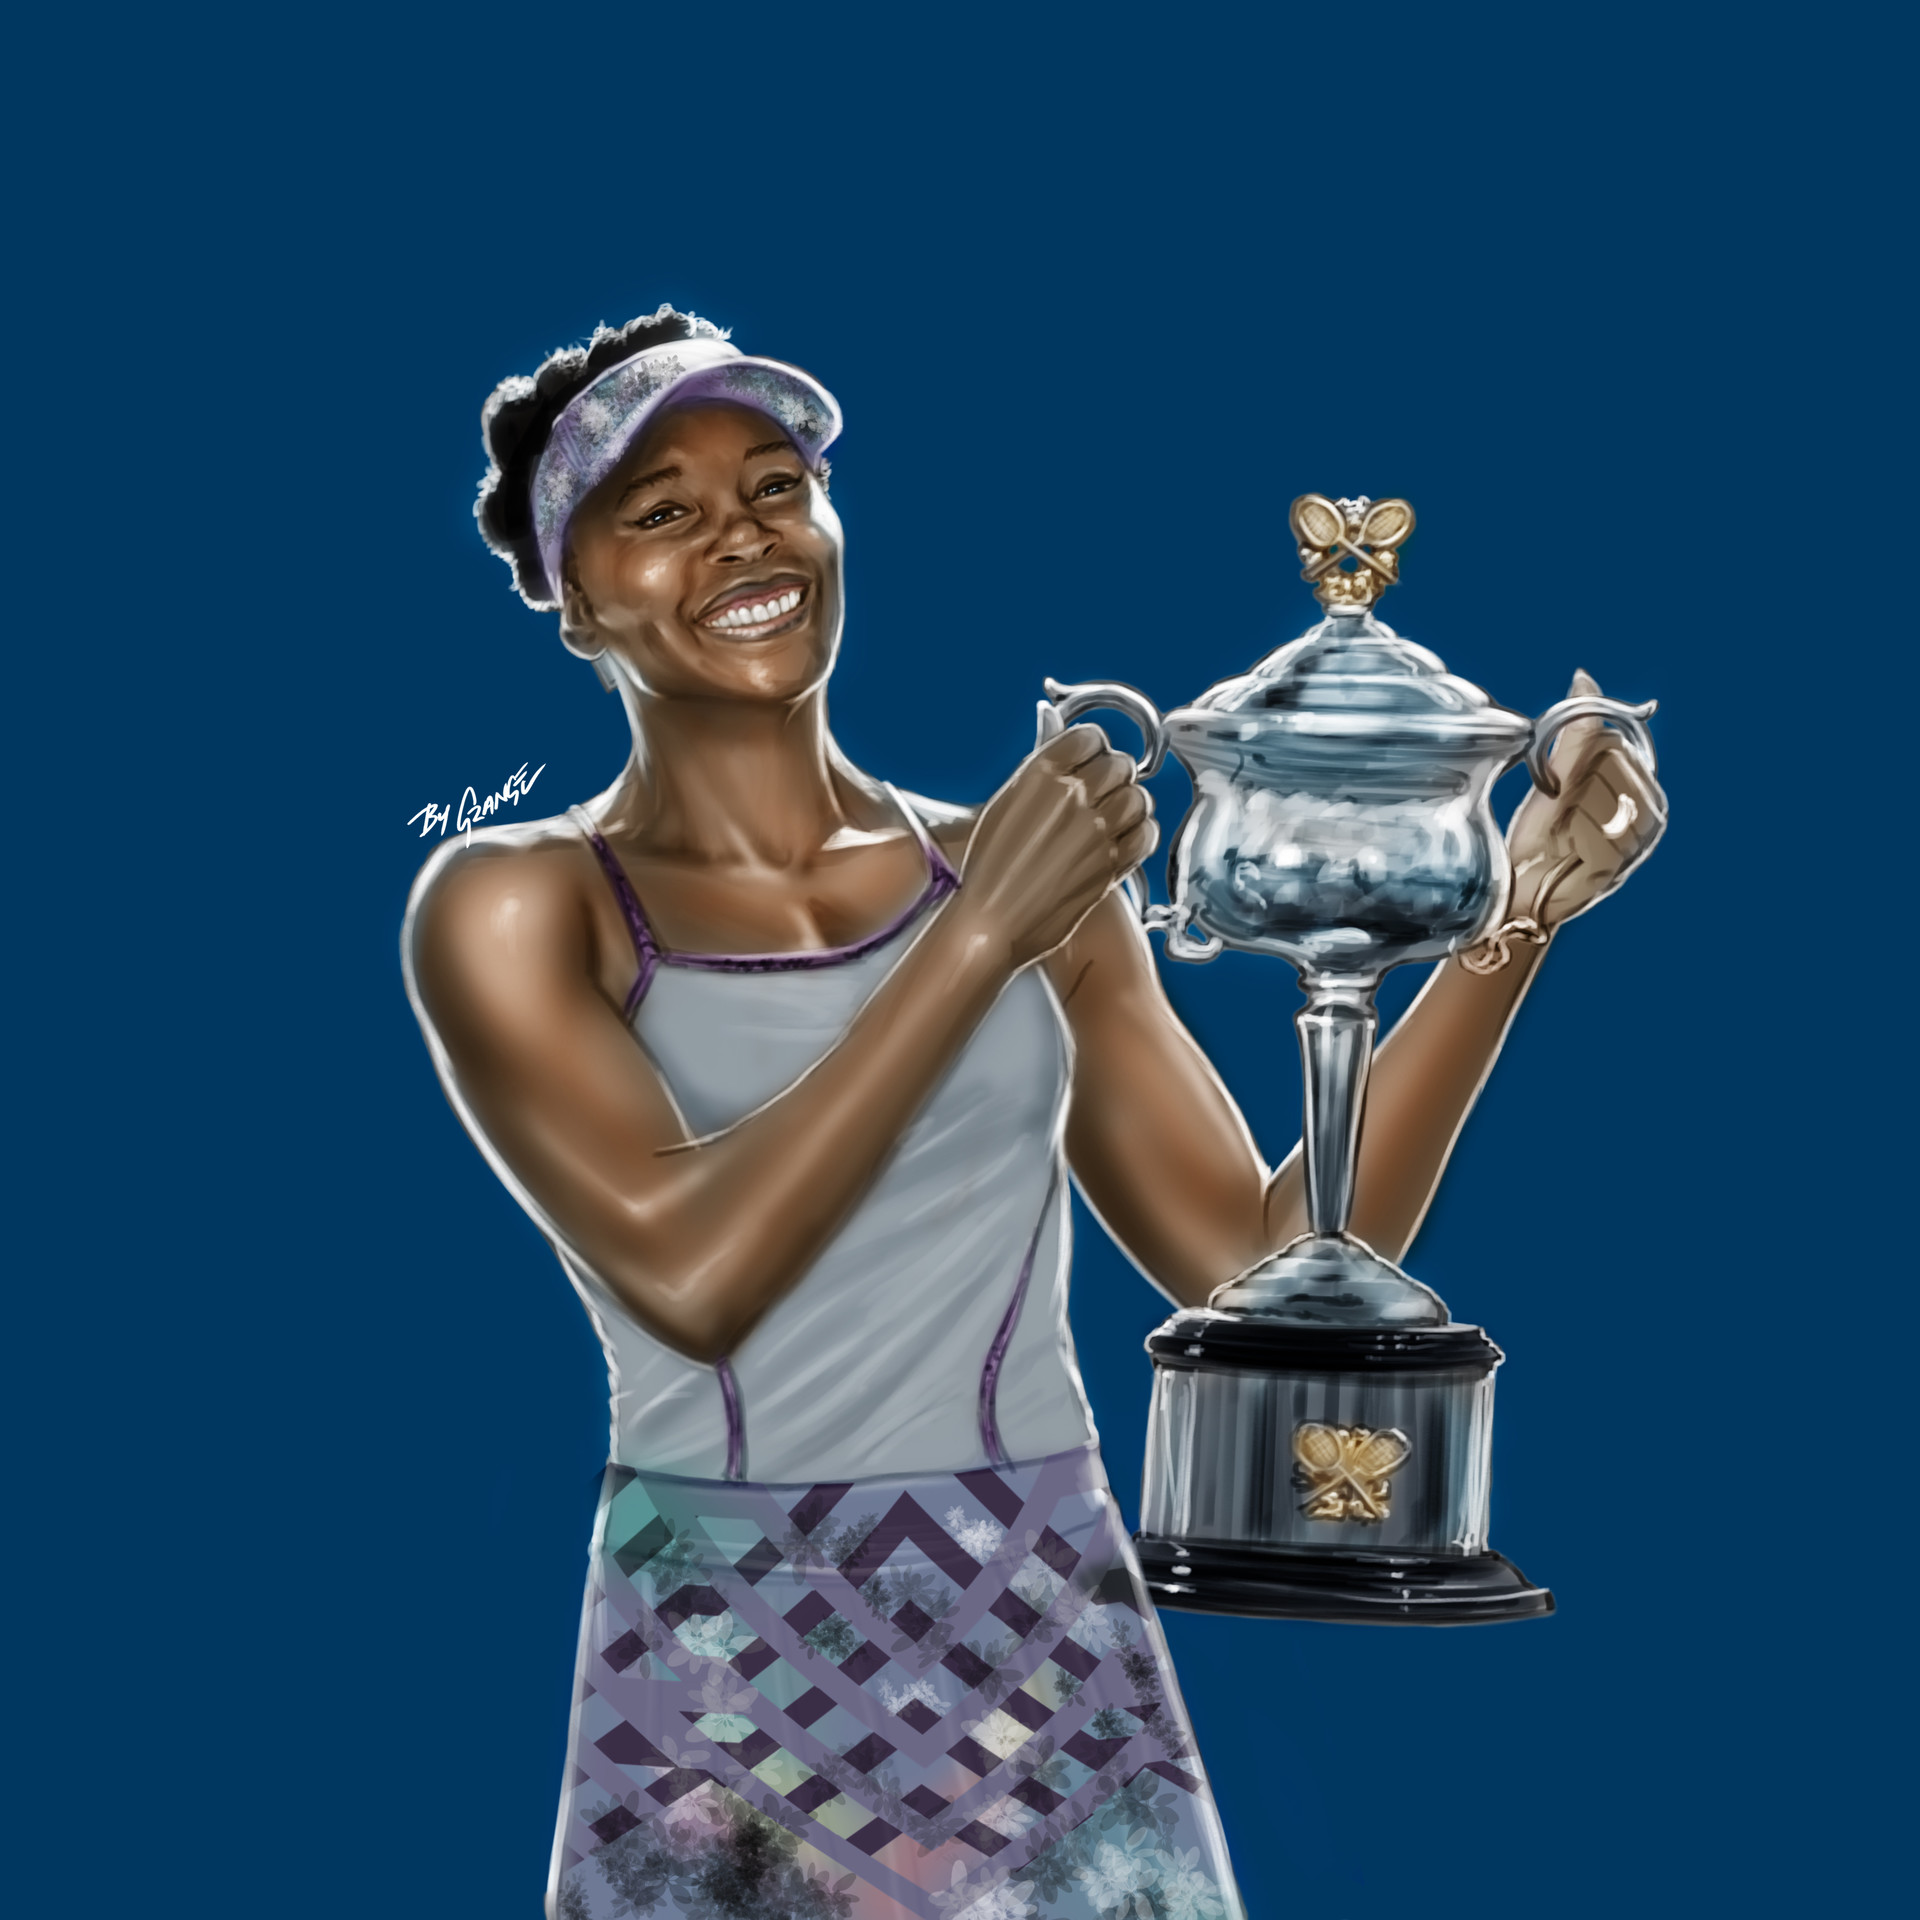 Grange wallis venus williams winner